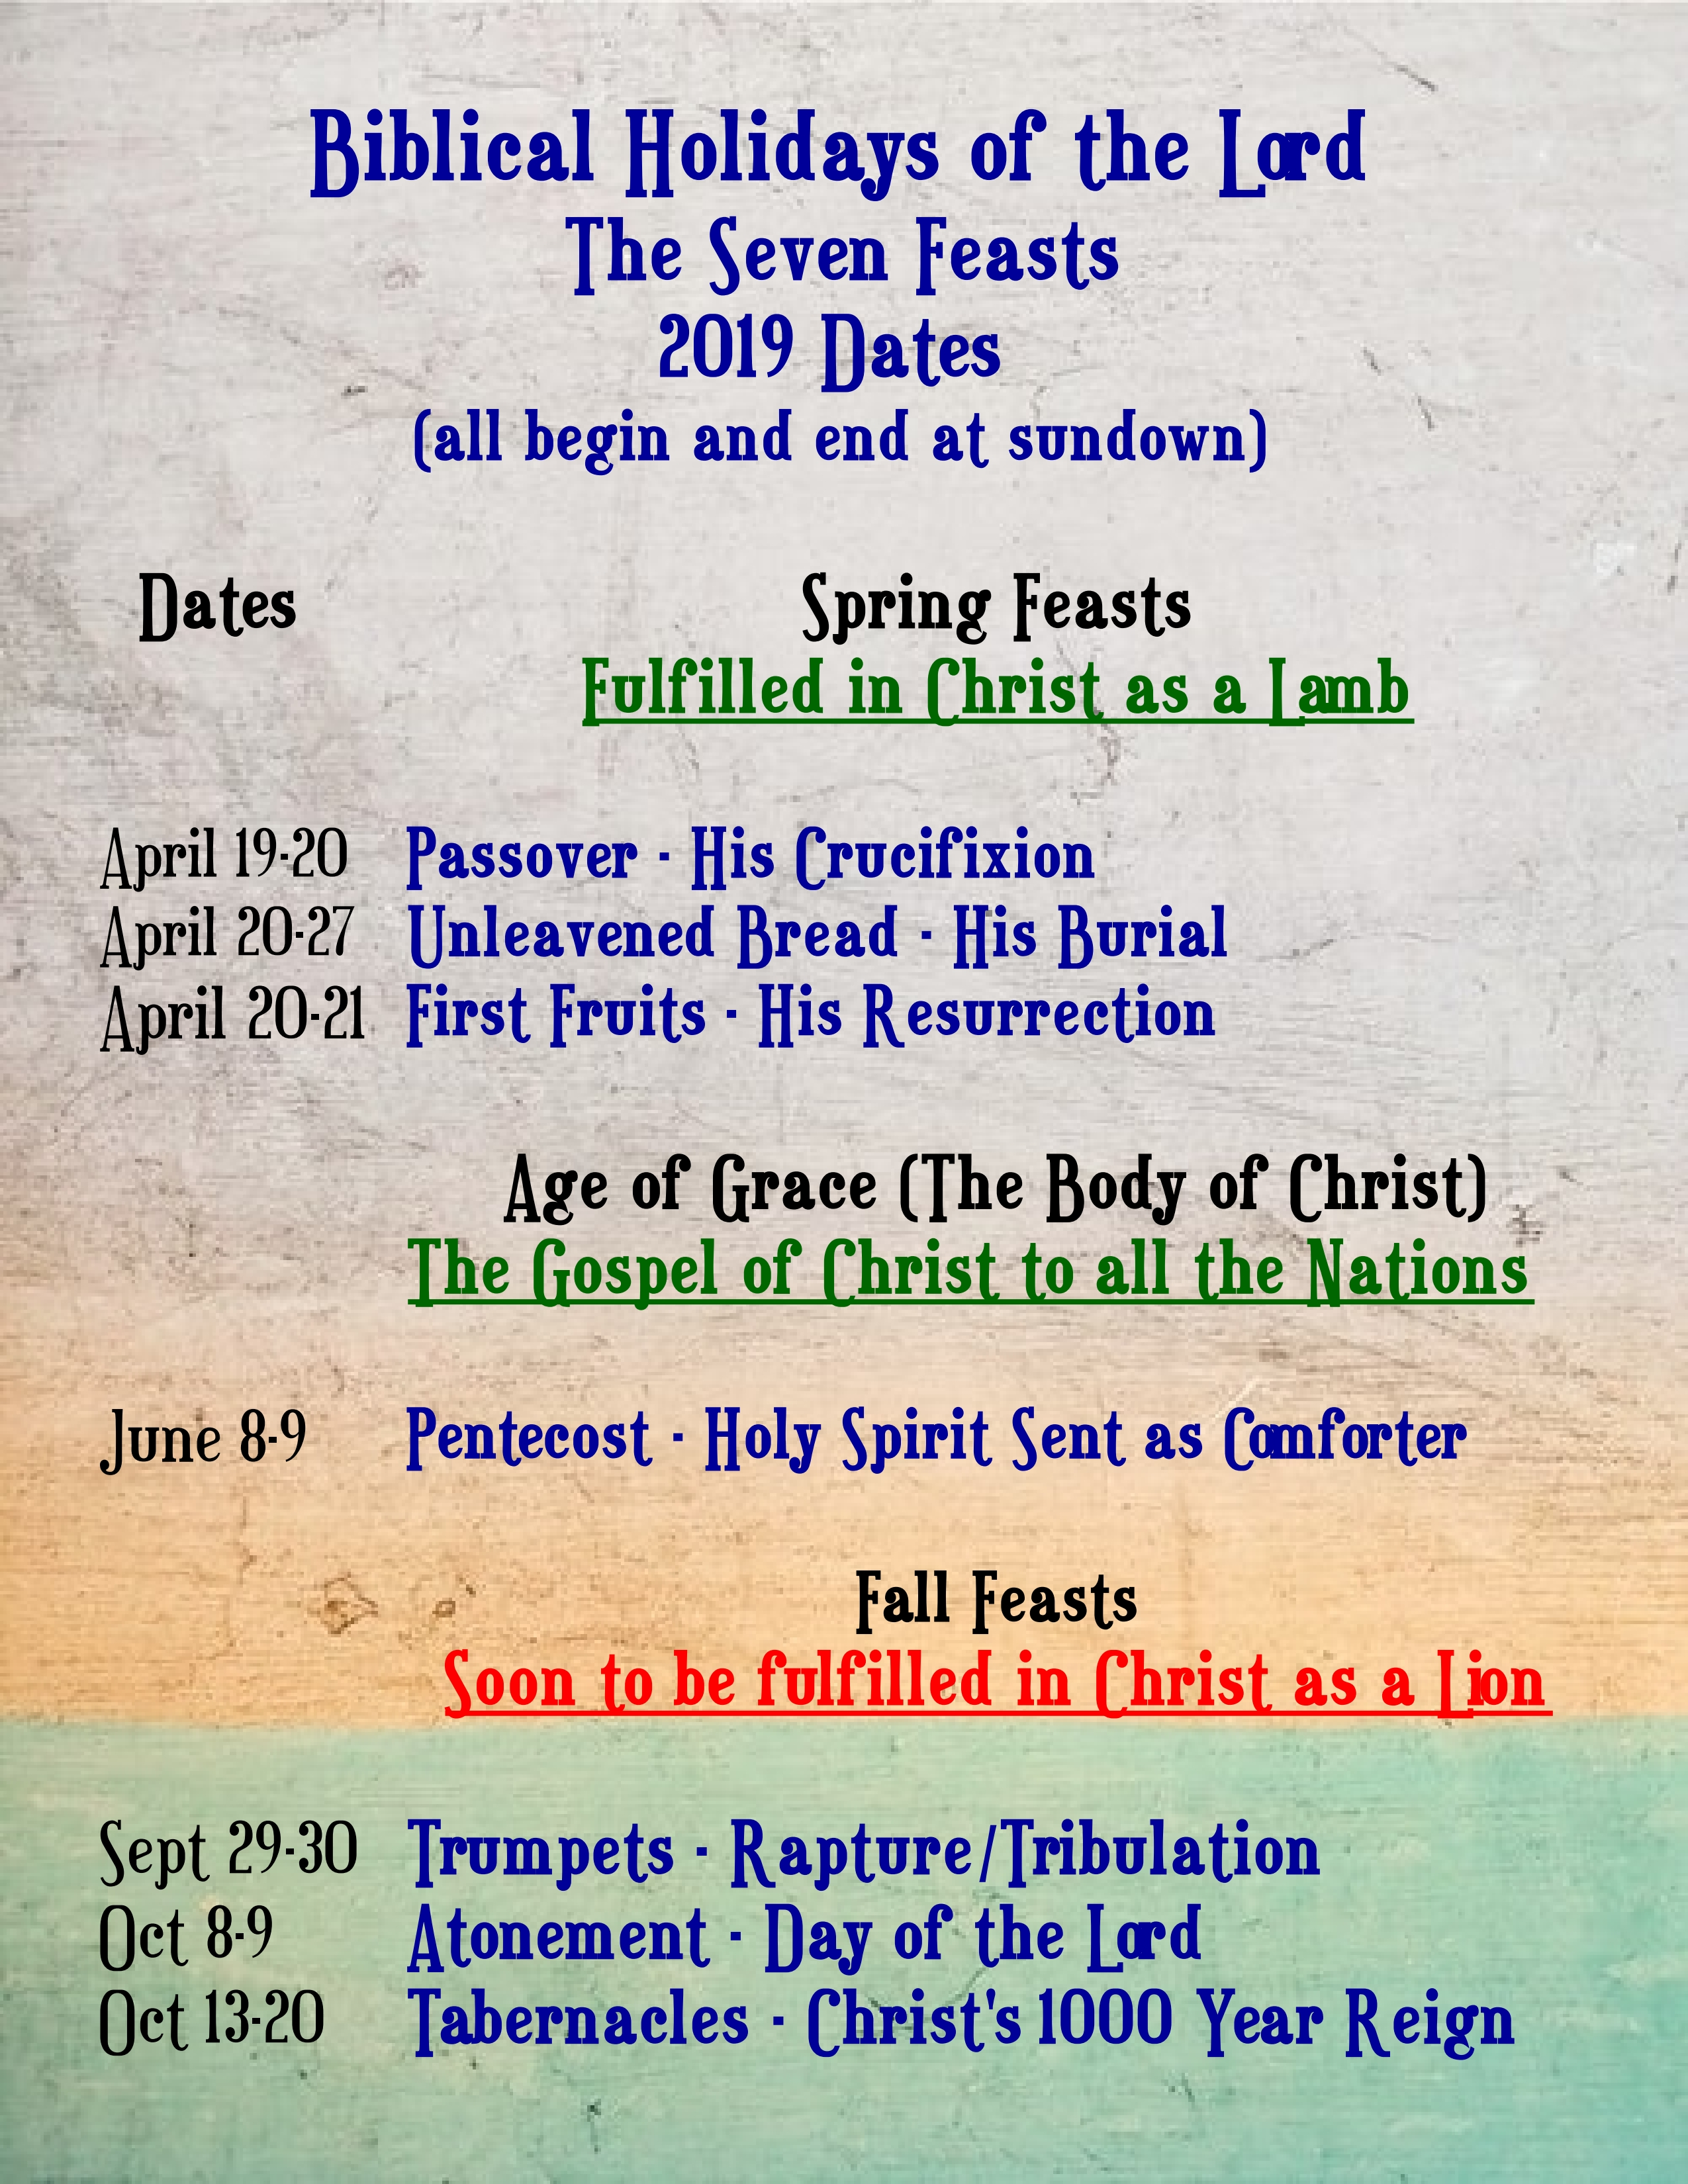 Reminder: 2019 The Lord's Holy Days | Theophilus Books